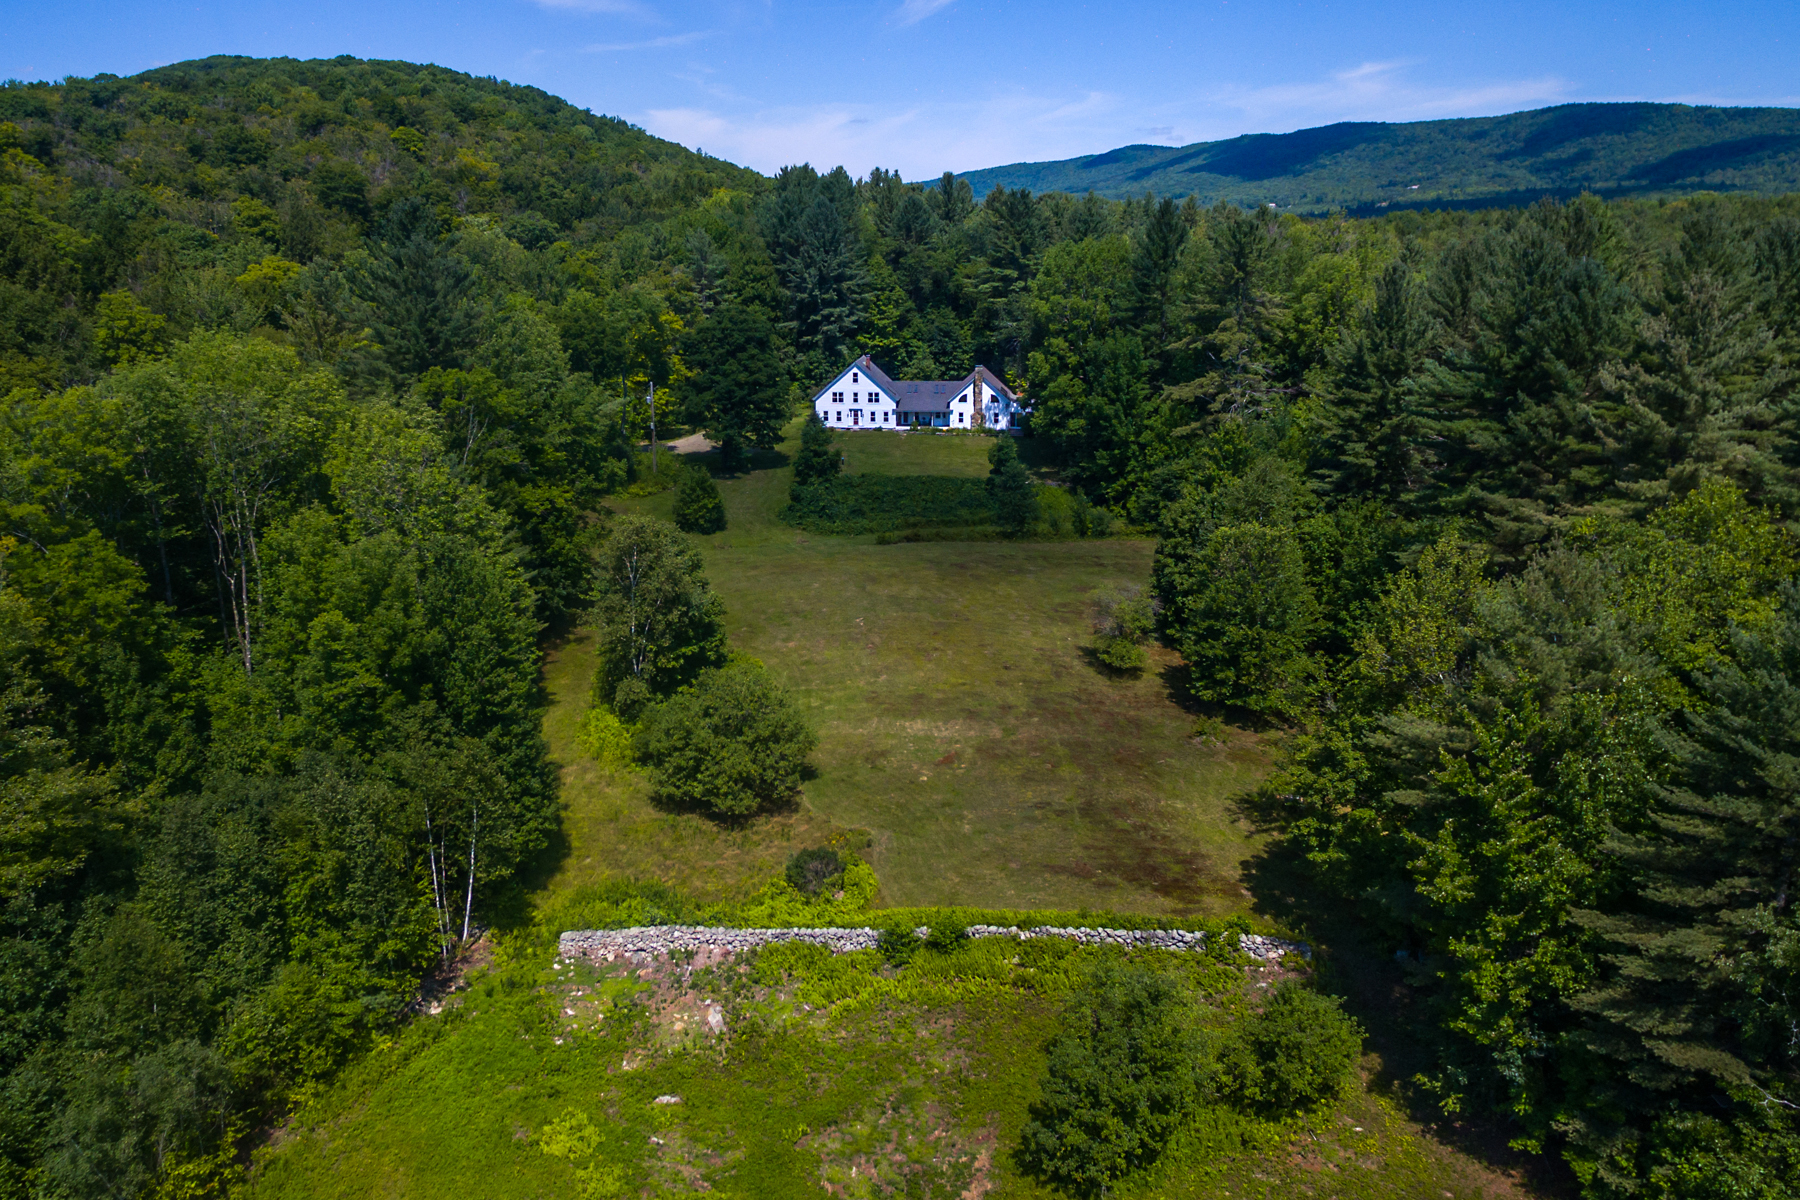 Casa Unifamiliar por un Venta en Forest, Farmhouse, Pastures and Pond 389 Cobble Hill Rd Londonderry, Vermont, 05148 Estados Unidos